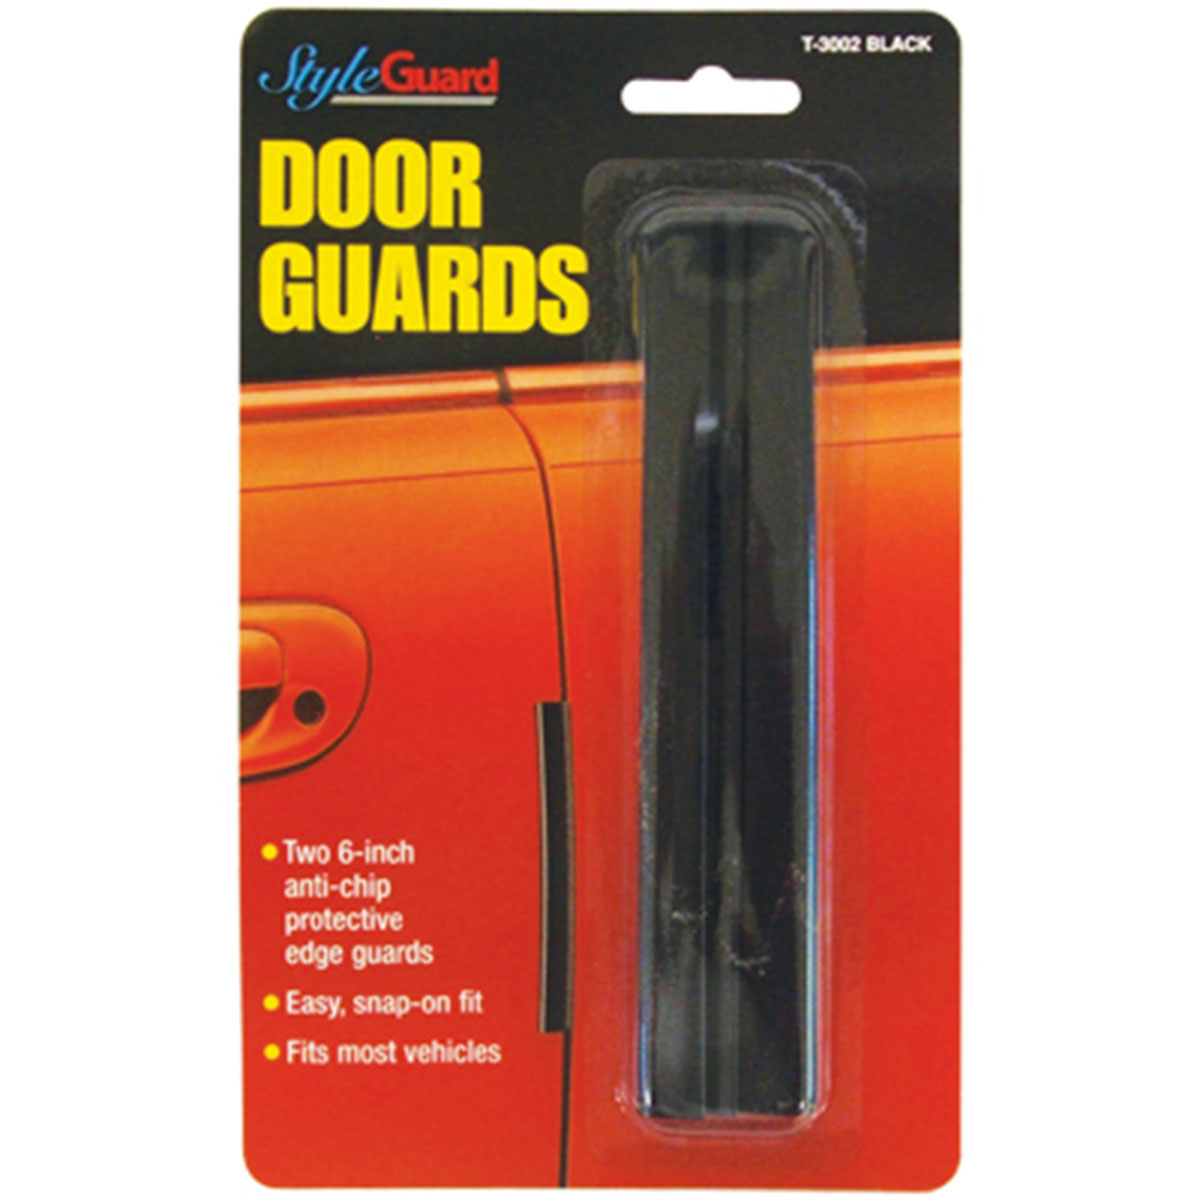 Door guard Cowles